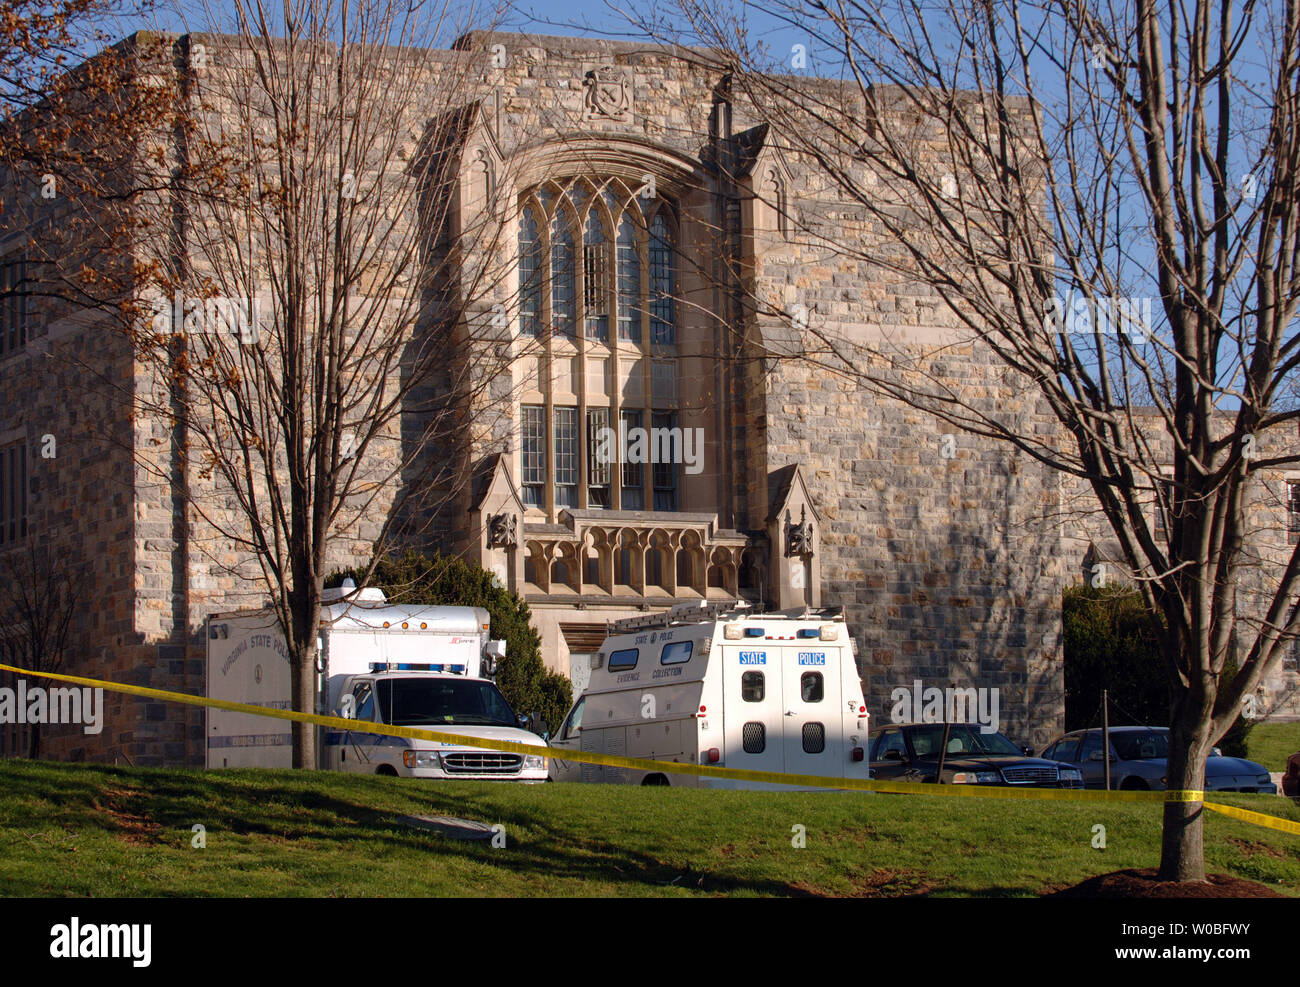 State Police Continue To Work The Crime Scene At Norris Hall At Virginia Tech Where 33 People Died On April 16 In Two Shooting Incidents On Campus In Blacksburg Virginia On April